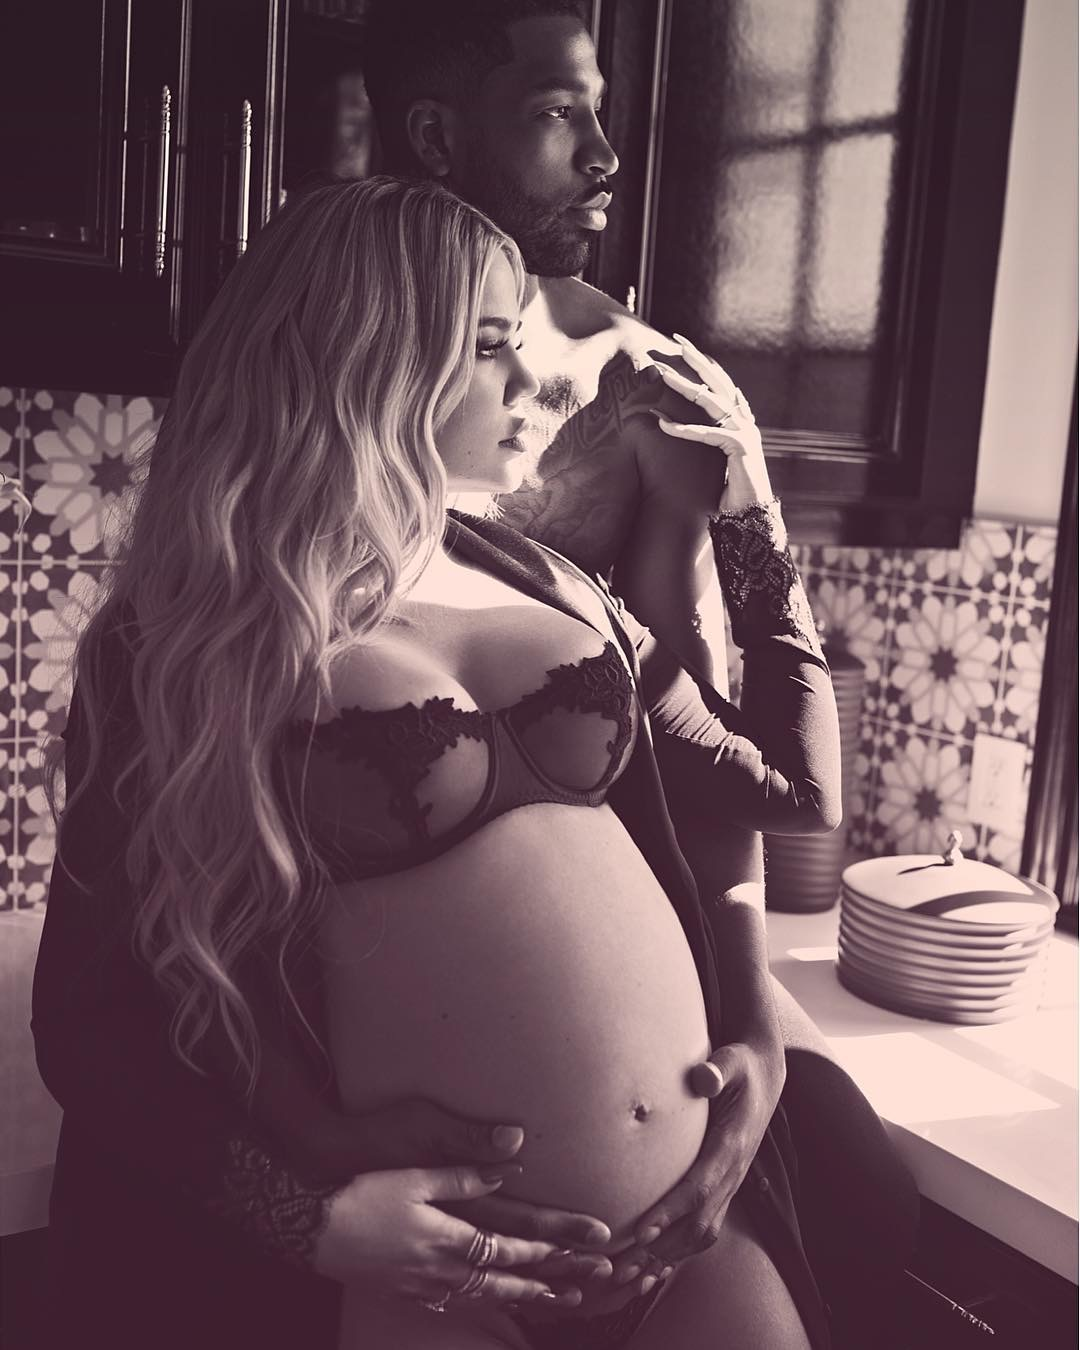 The Koko Baby Is Here Amidst The Heat – Khloe And Tristan Have Welcomed Their Baby Girl